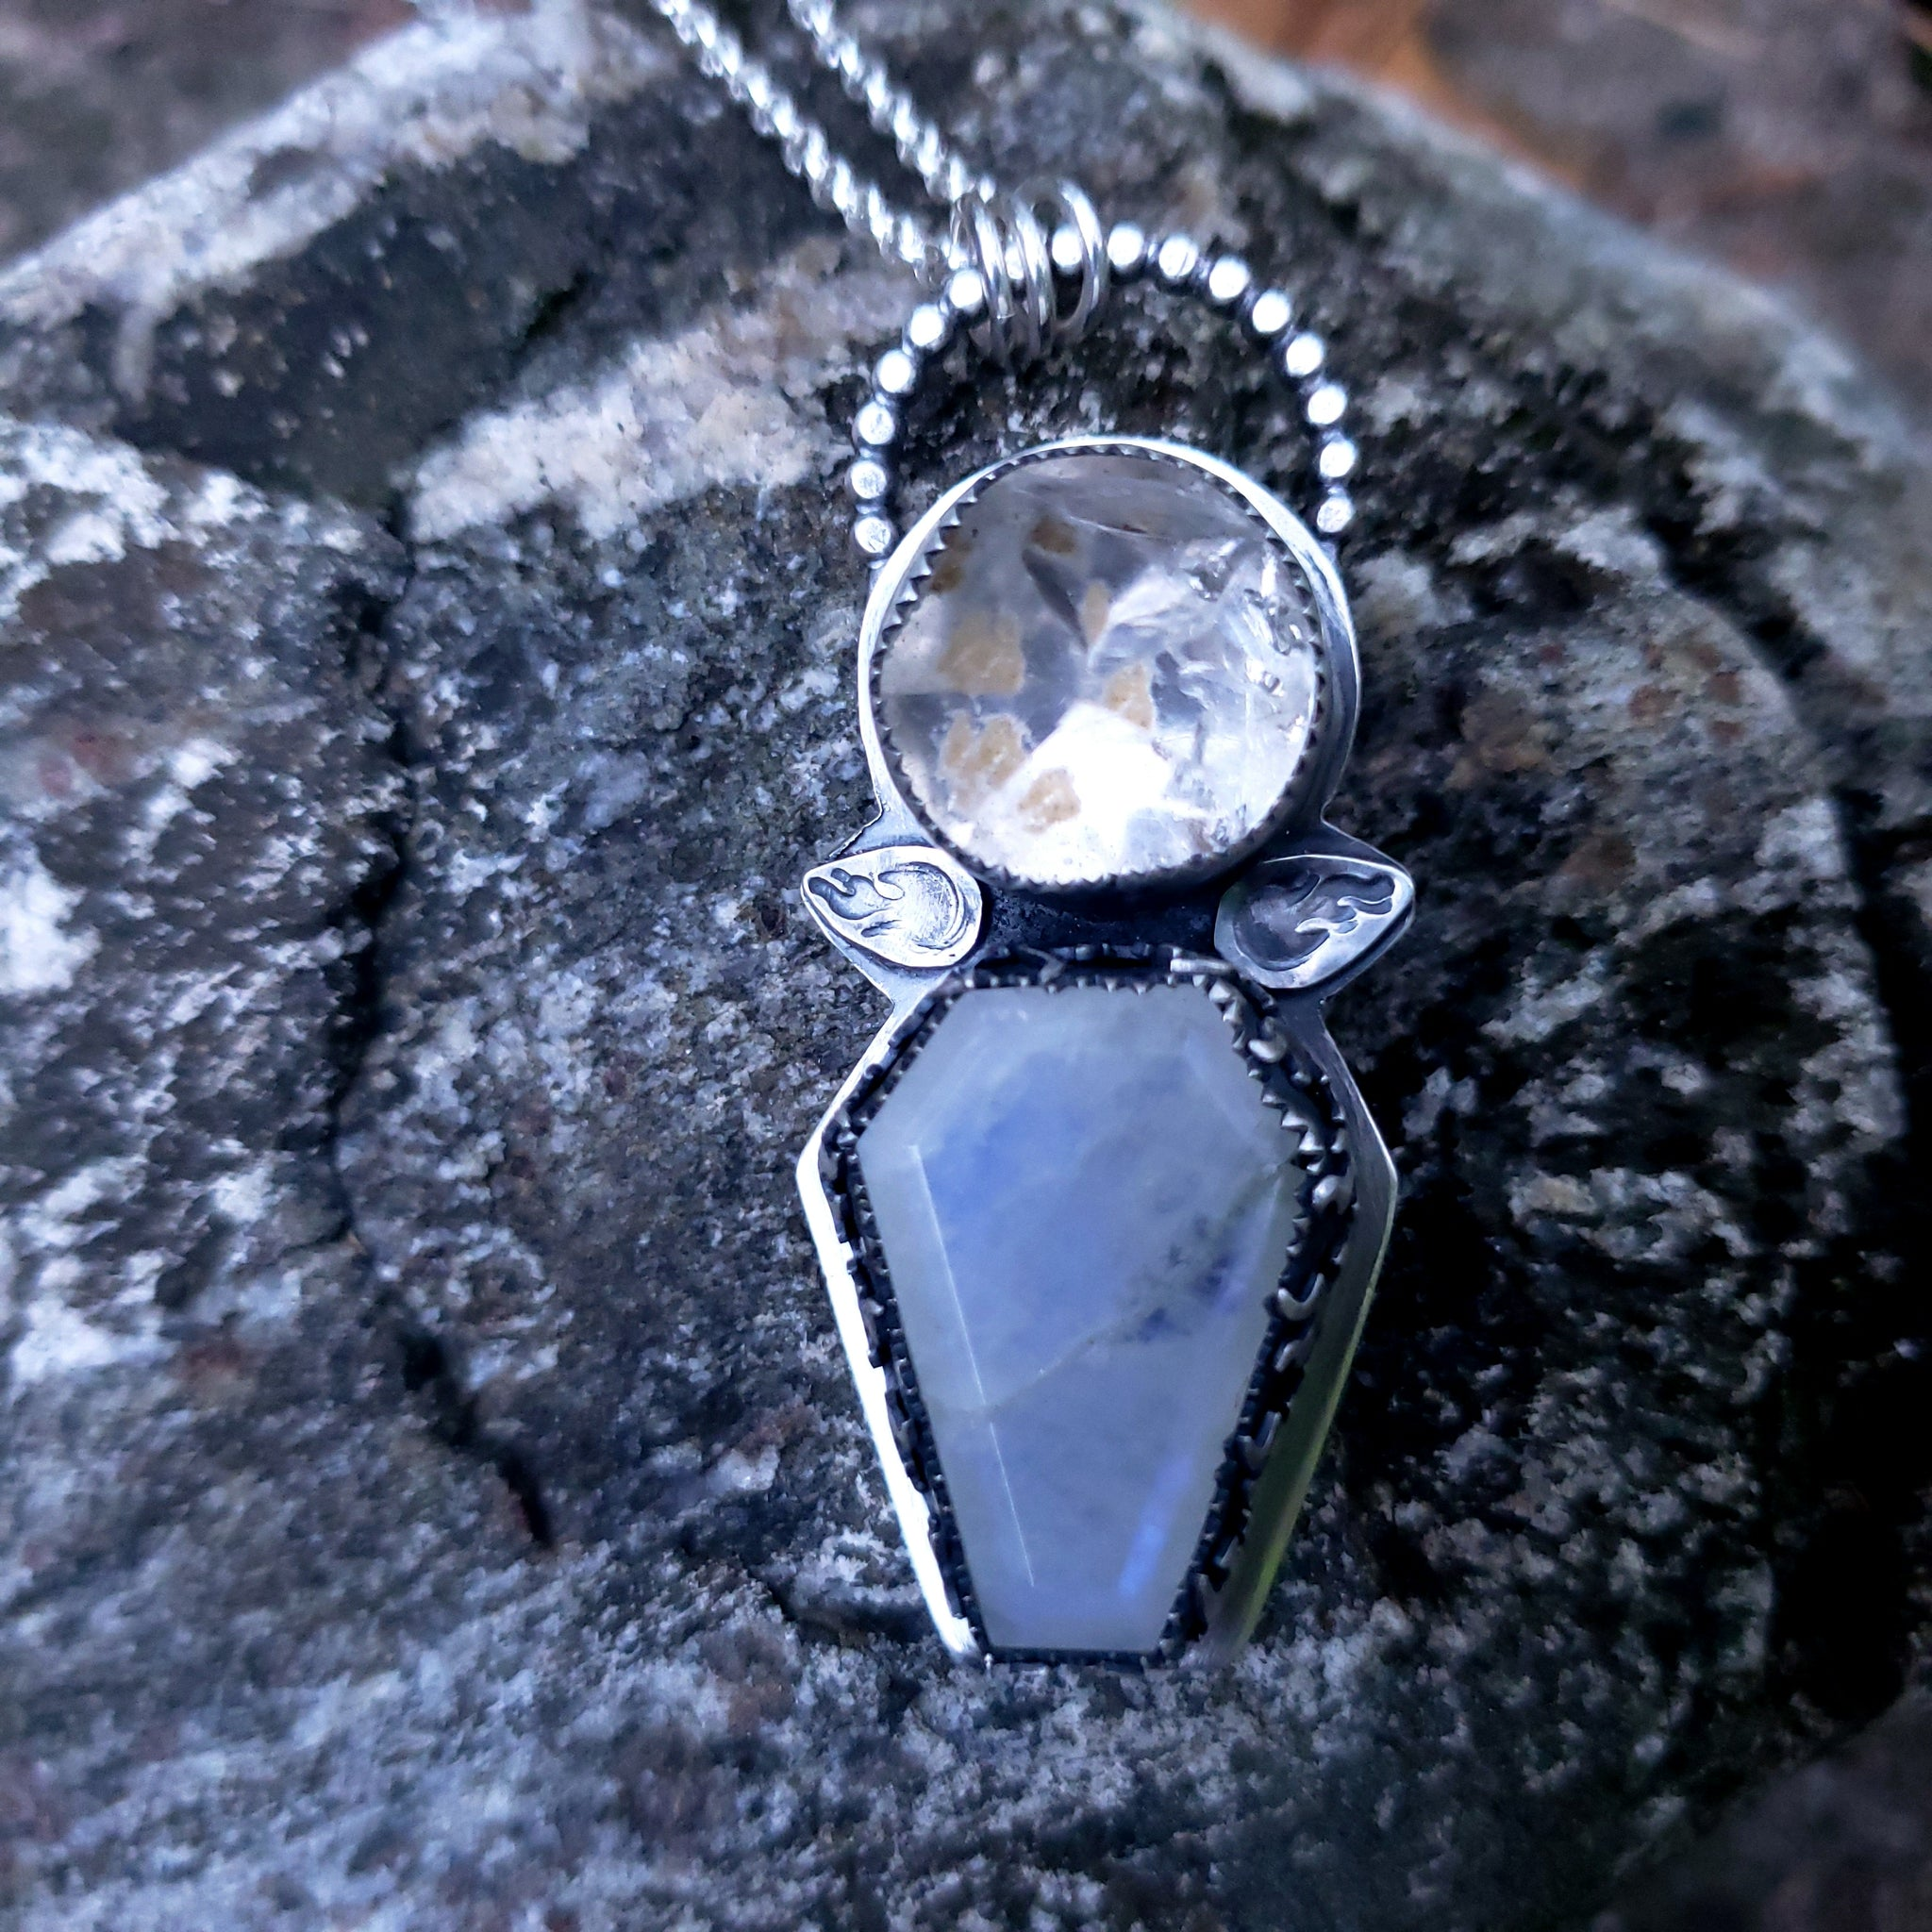 Fire & Ice Pendant - Moonstone Coffin with Herkimer Diamond in Sterling Silver